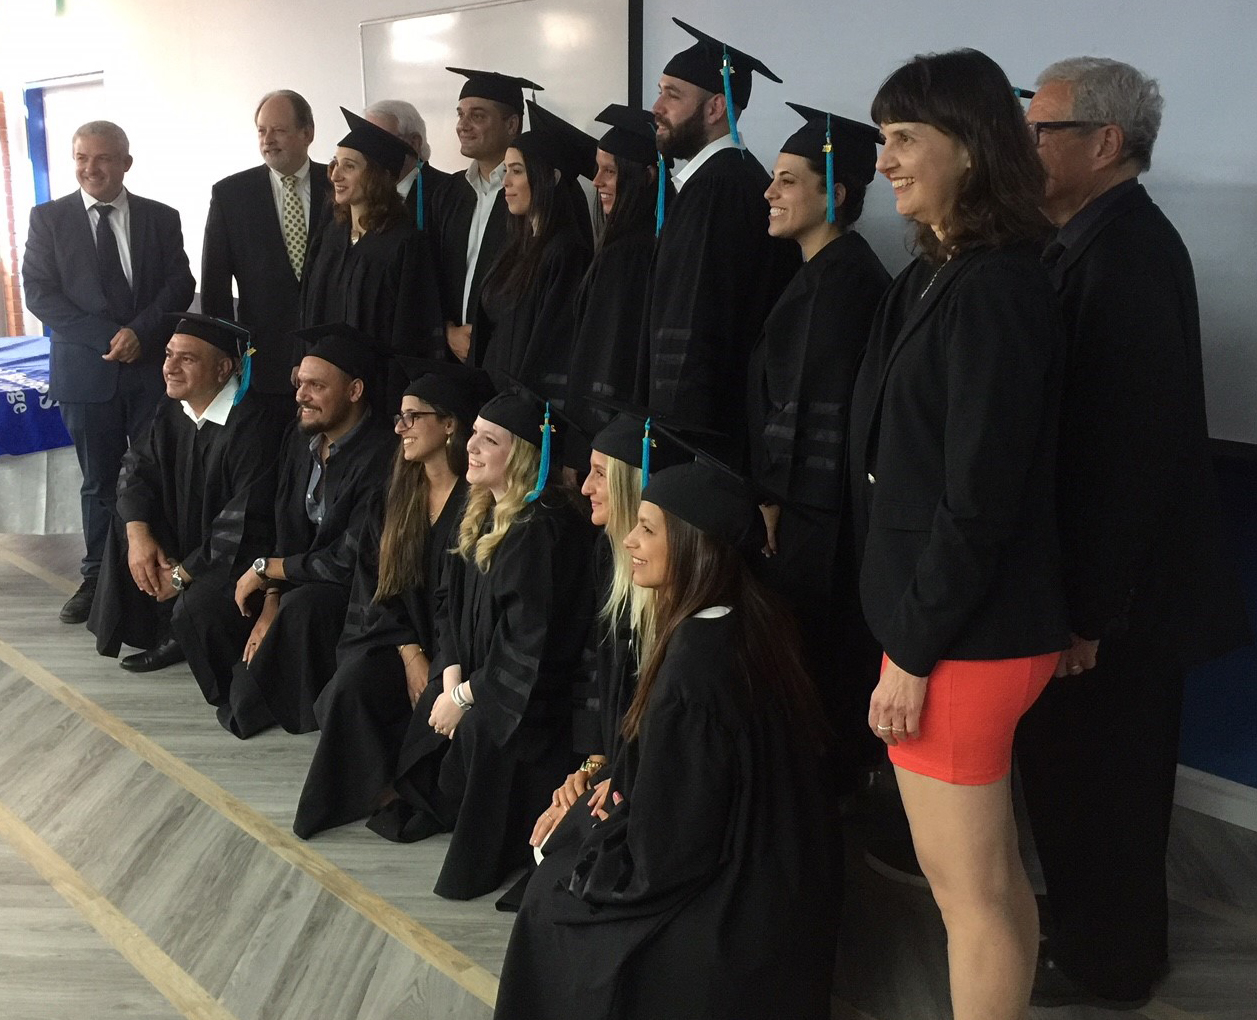 Baruch College celebrates the graduation of the inaugural class of a dual degree business program that the Zicklin School of Business launched with Israel's College of Management